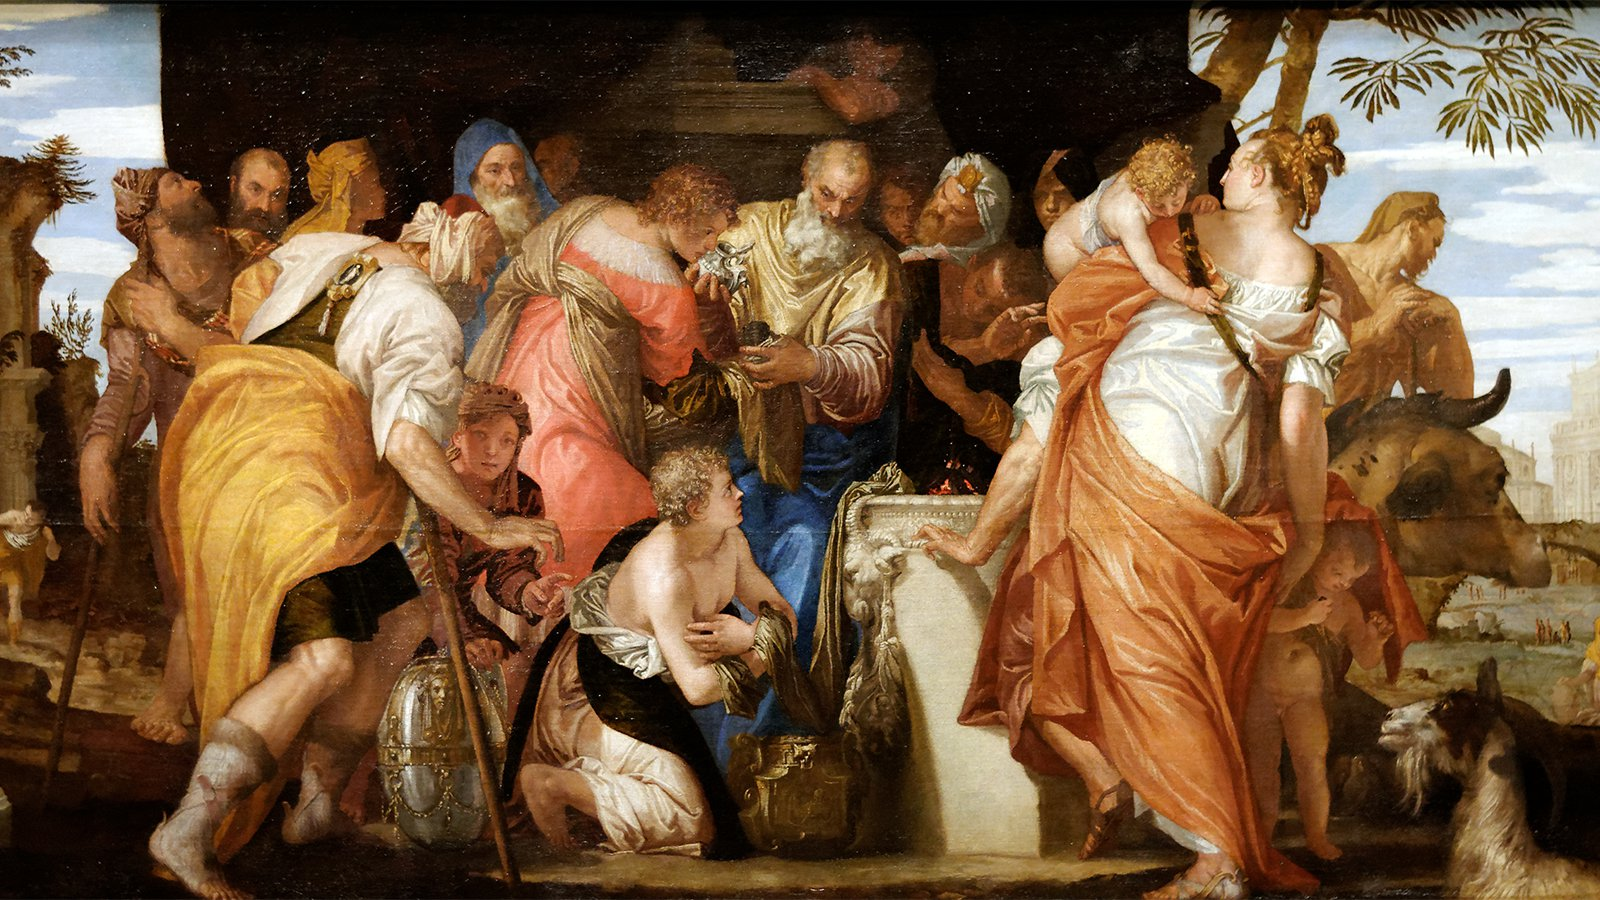 """""""The Anointment of David,"""" circa 1555, depicts the Old Testament scene when the young shepherd David is anointed by the prophet Samuel. Similar paintings have incorrectly been labeled as Saul anointing David. Image by Paolo Veronese/Creative Commons via RNS."""